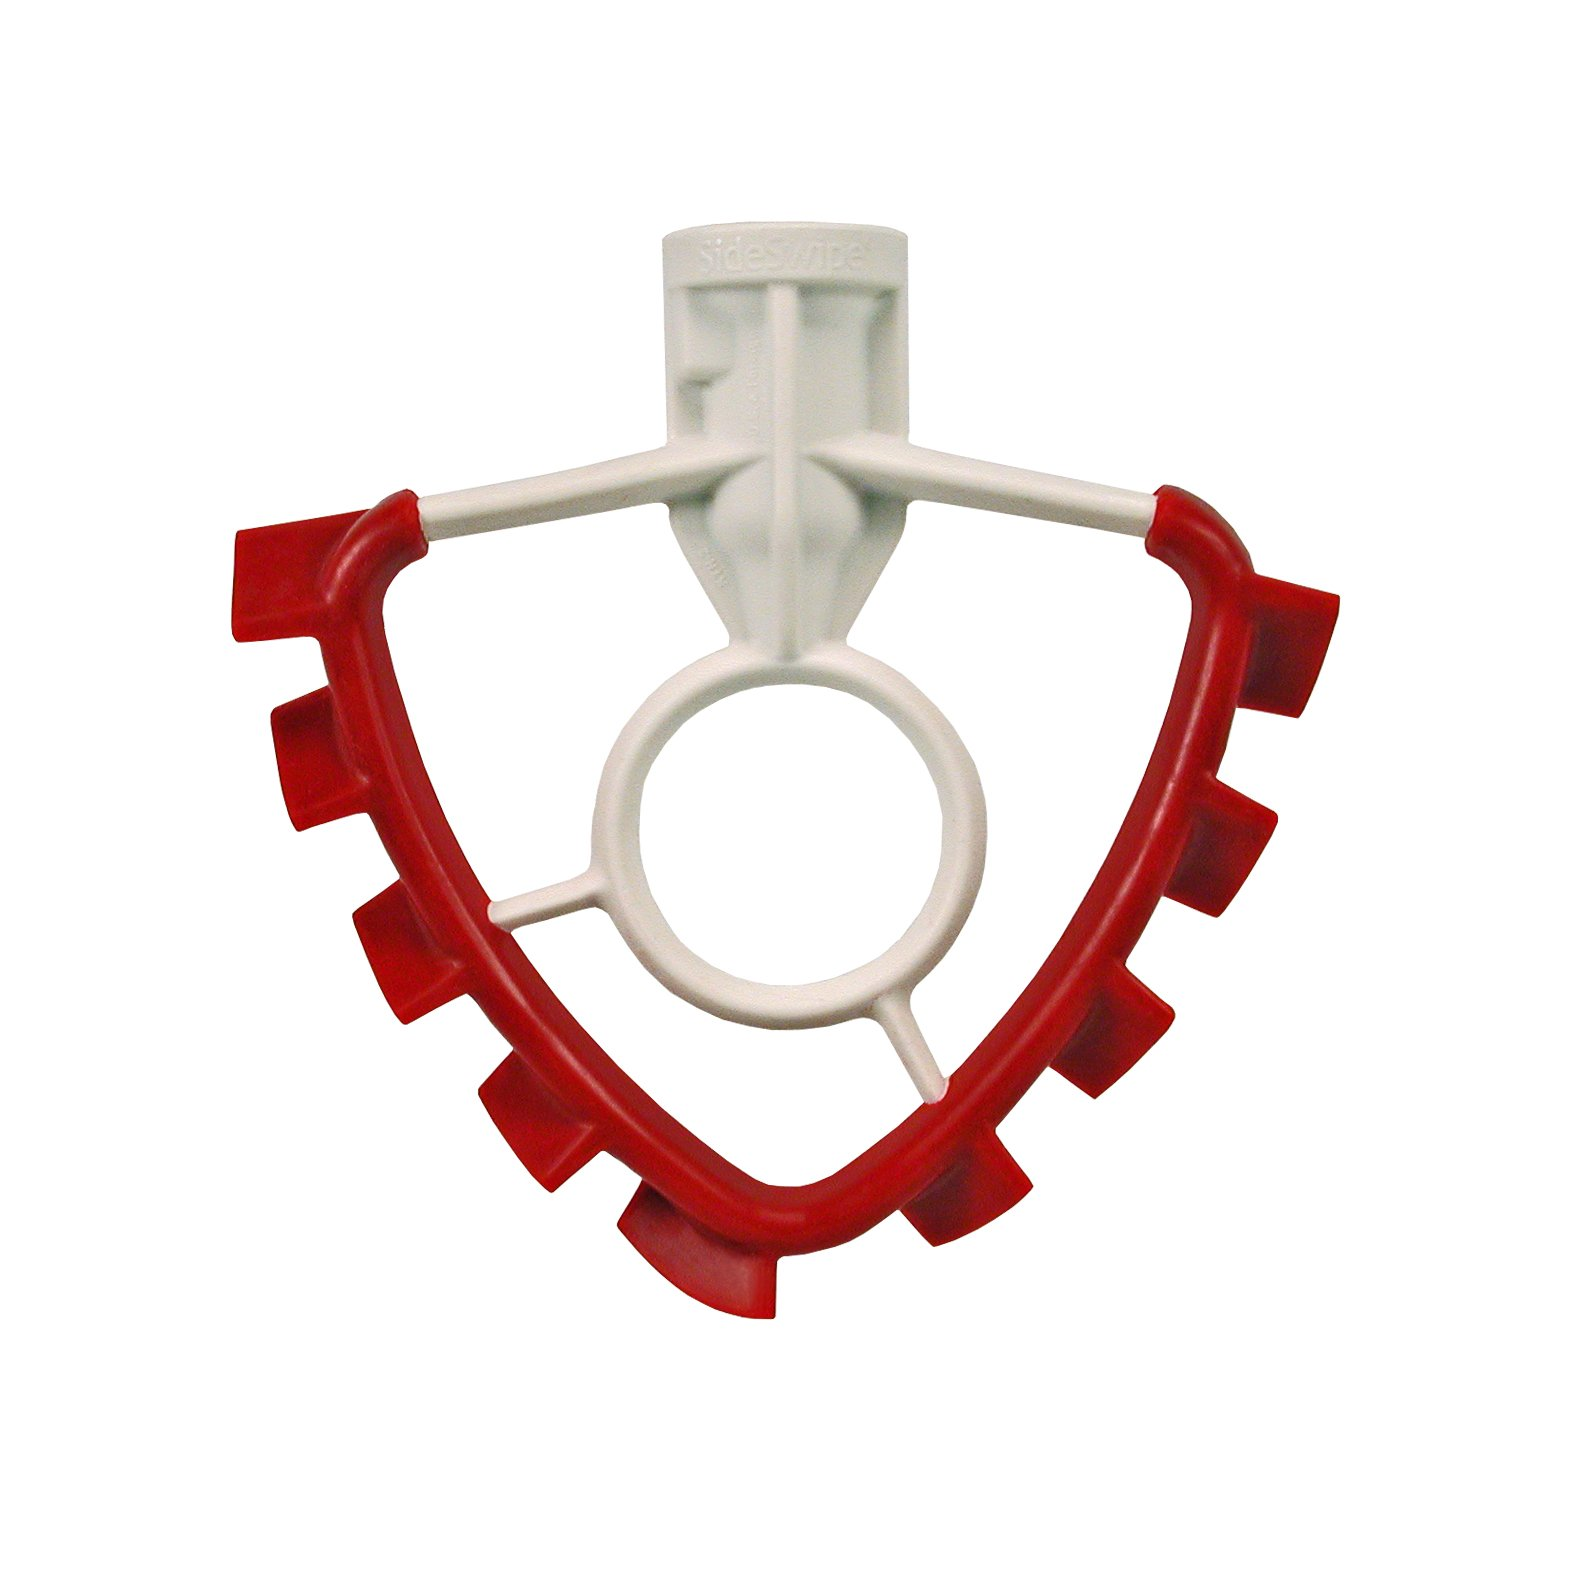 SideSwipe flex edge beater for KitchenAid Tilt-Head Mixers, in Red by SideSwipe (Image #1)